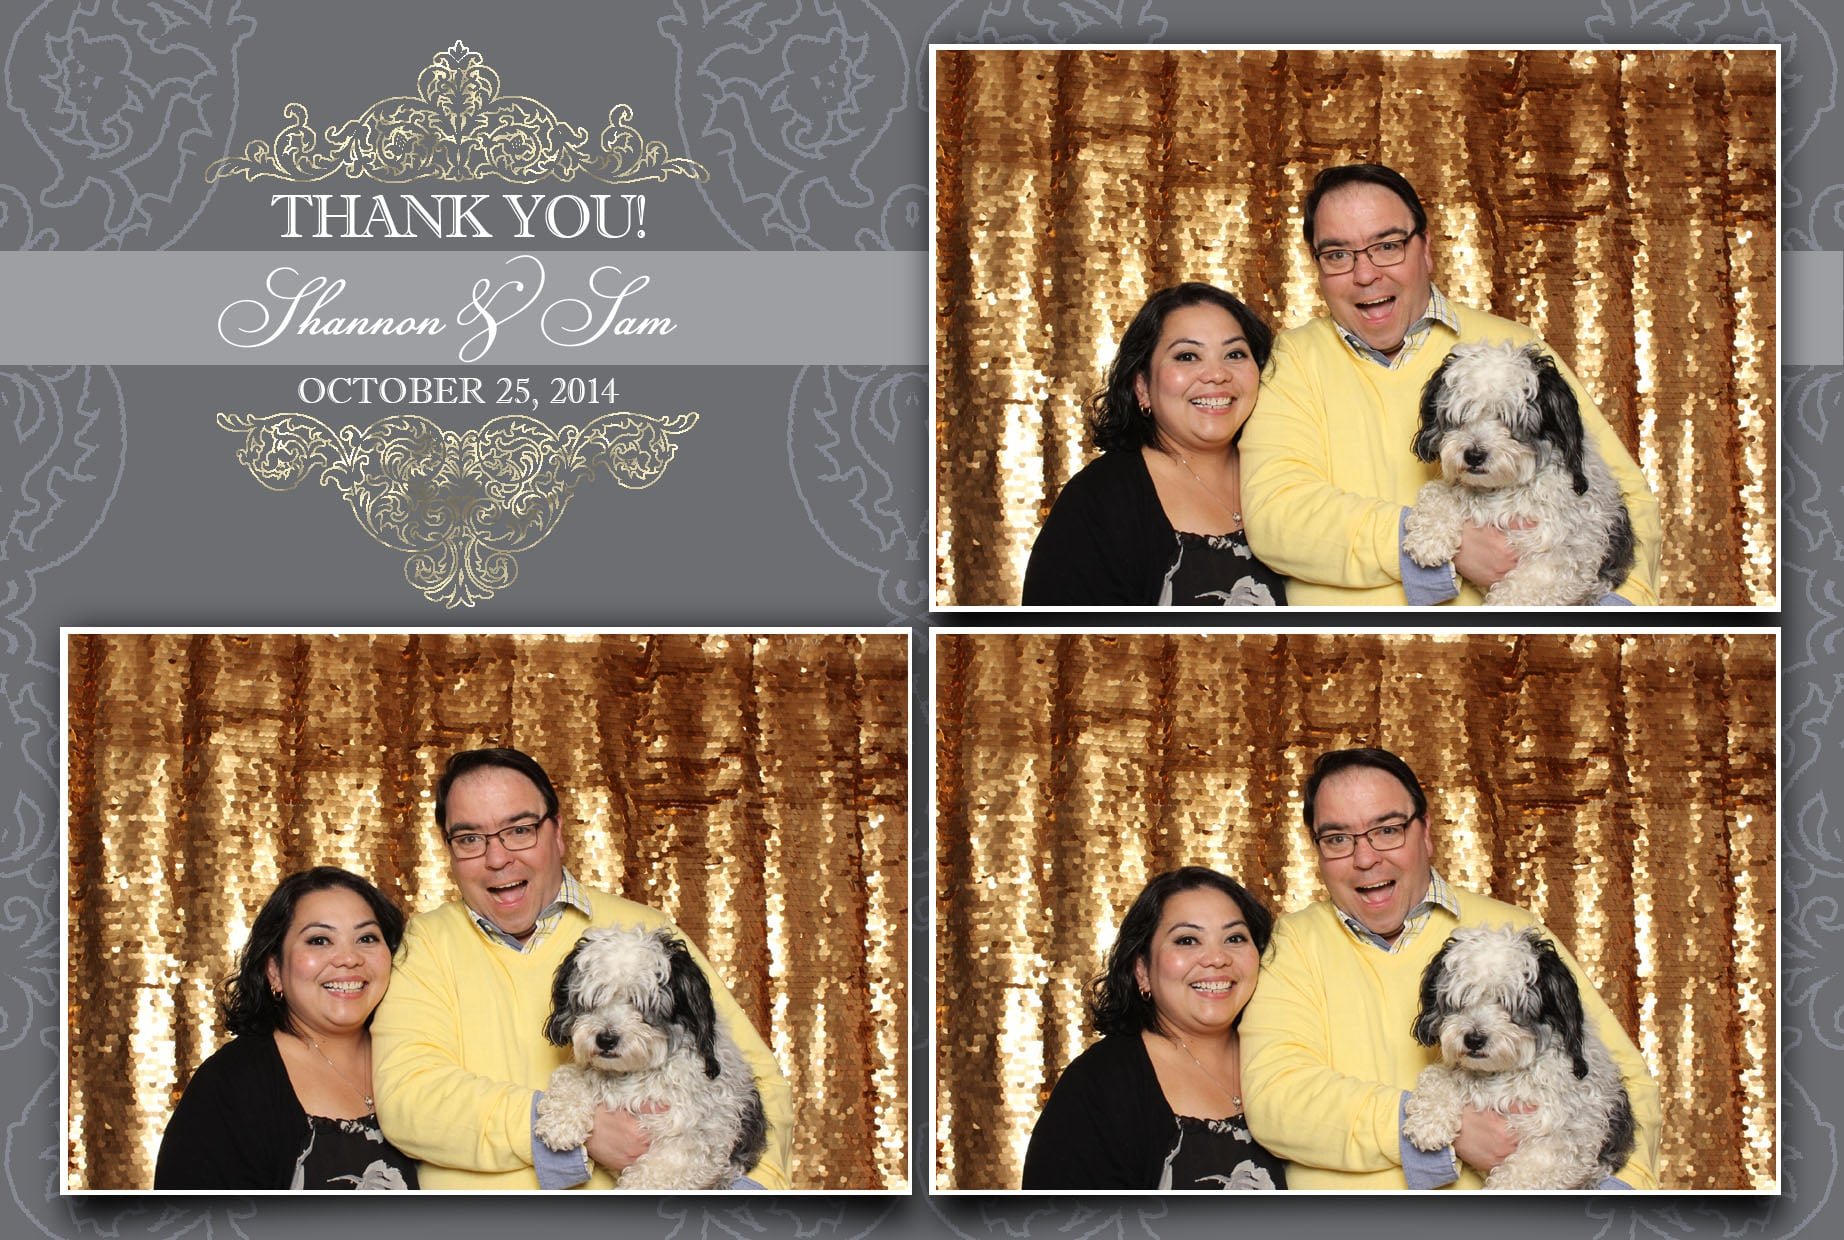 Honolulu Oahu Hawaii photo booth rental for wedding birthday graduation